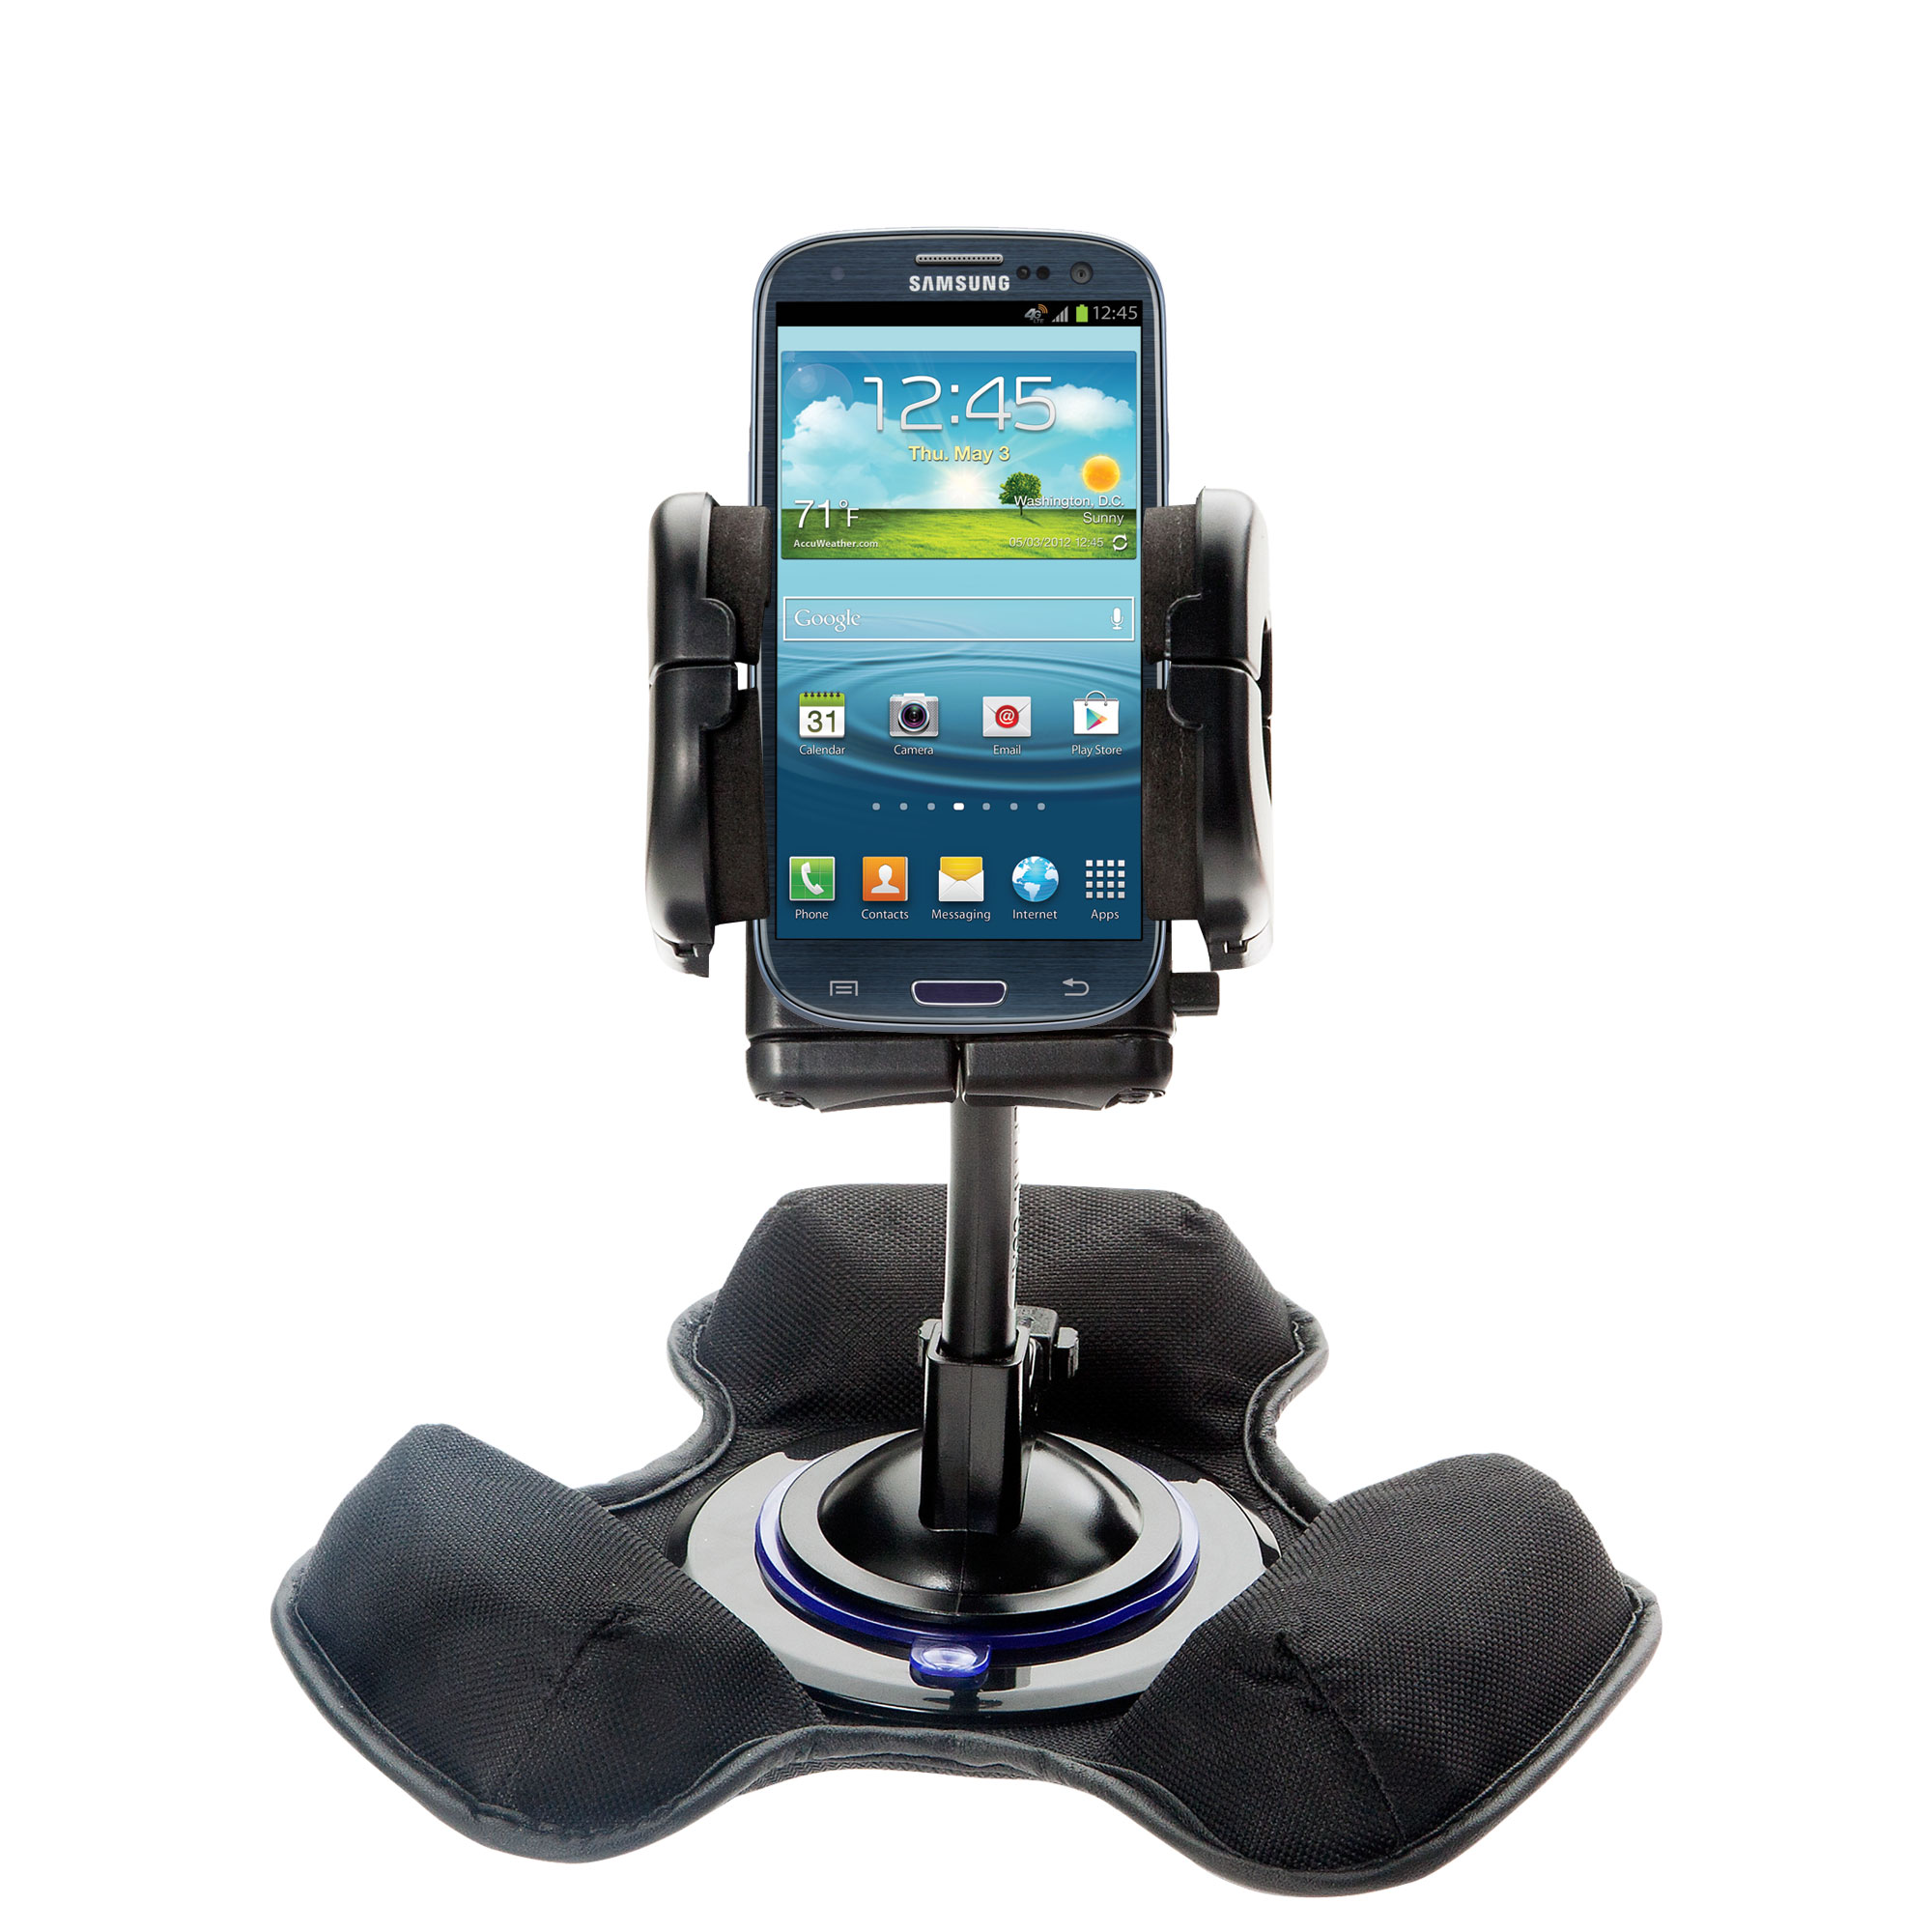 Car / Truck Vehicle Holder Mounting System for Samsung Galaxy S III Includes Unique Flexible Windshield Suction and Universal Dashboard Mount Options